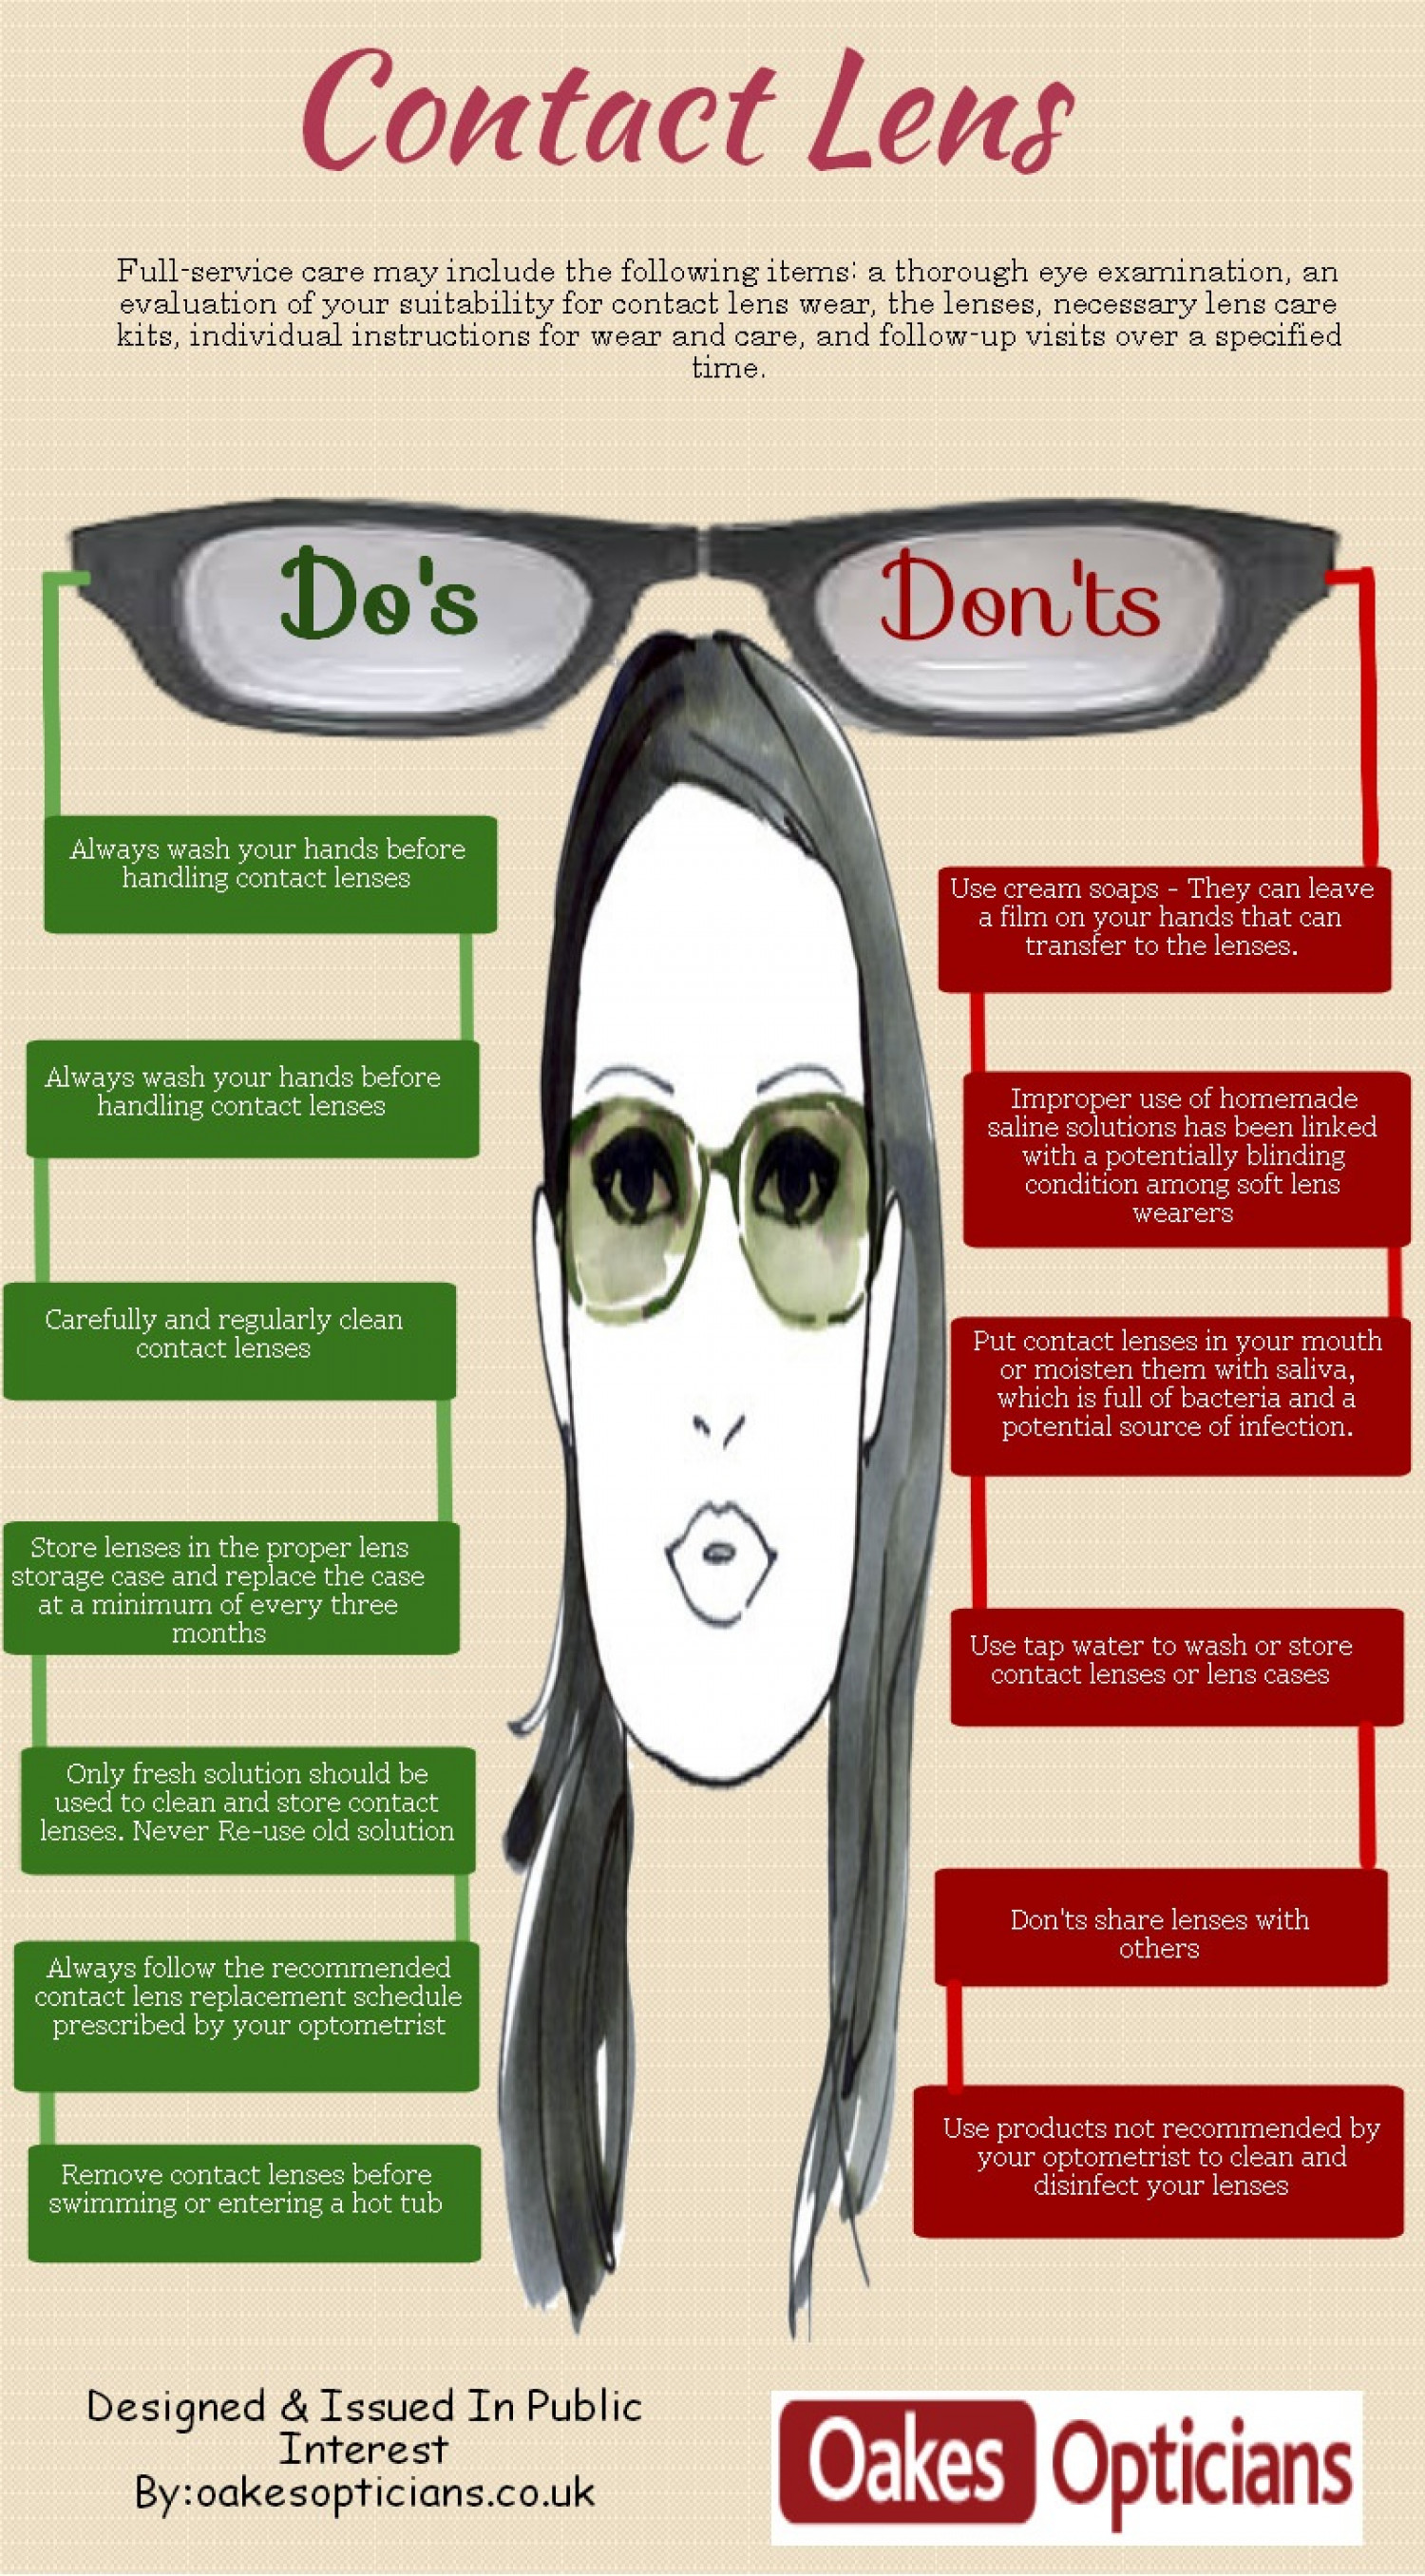 Contact Lens Do's and Don'ts Infographic